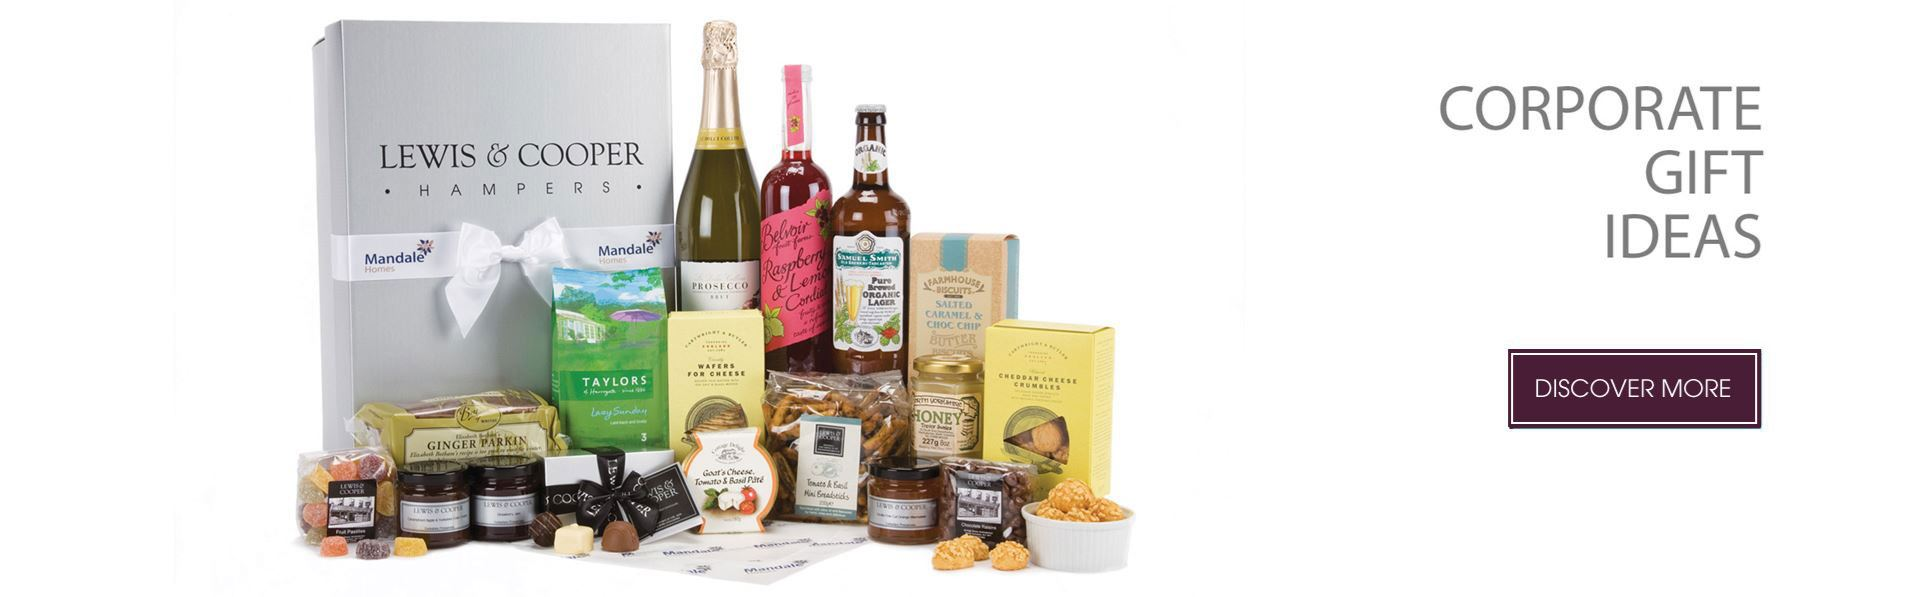 Luxury Hampers from Lewis & Cooper Corporate Gift Hampers ...